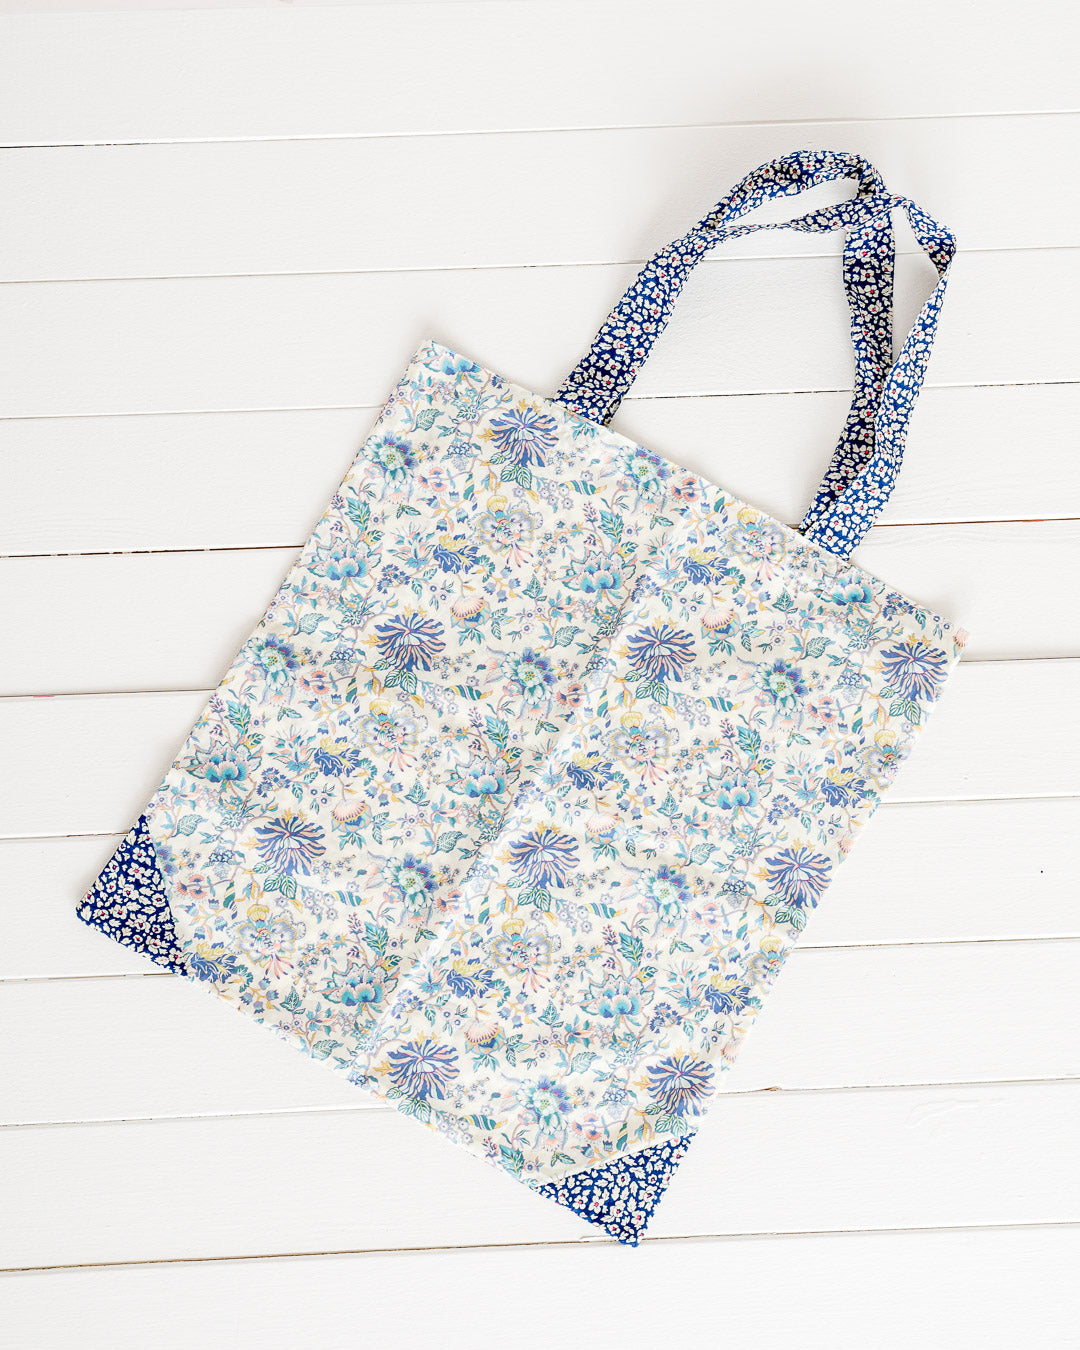 Tine K Home // Tasche Liberty Tote Bag Multi